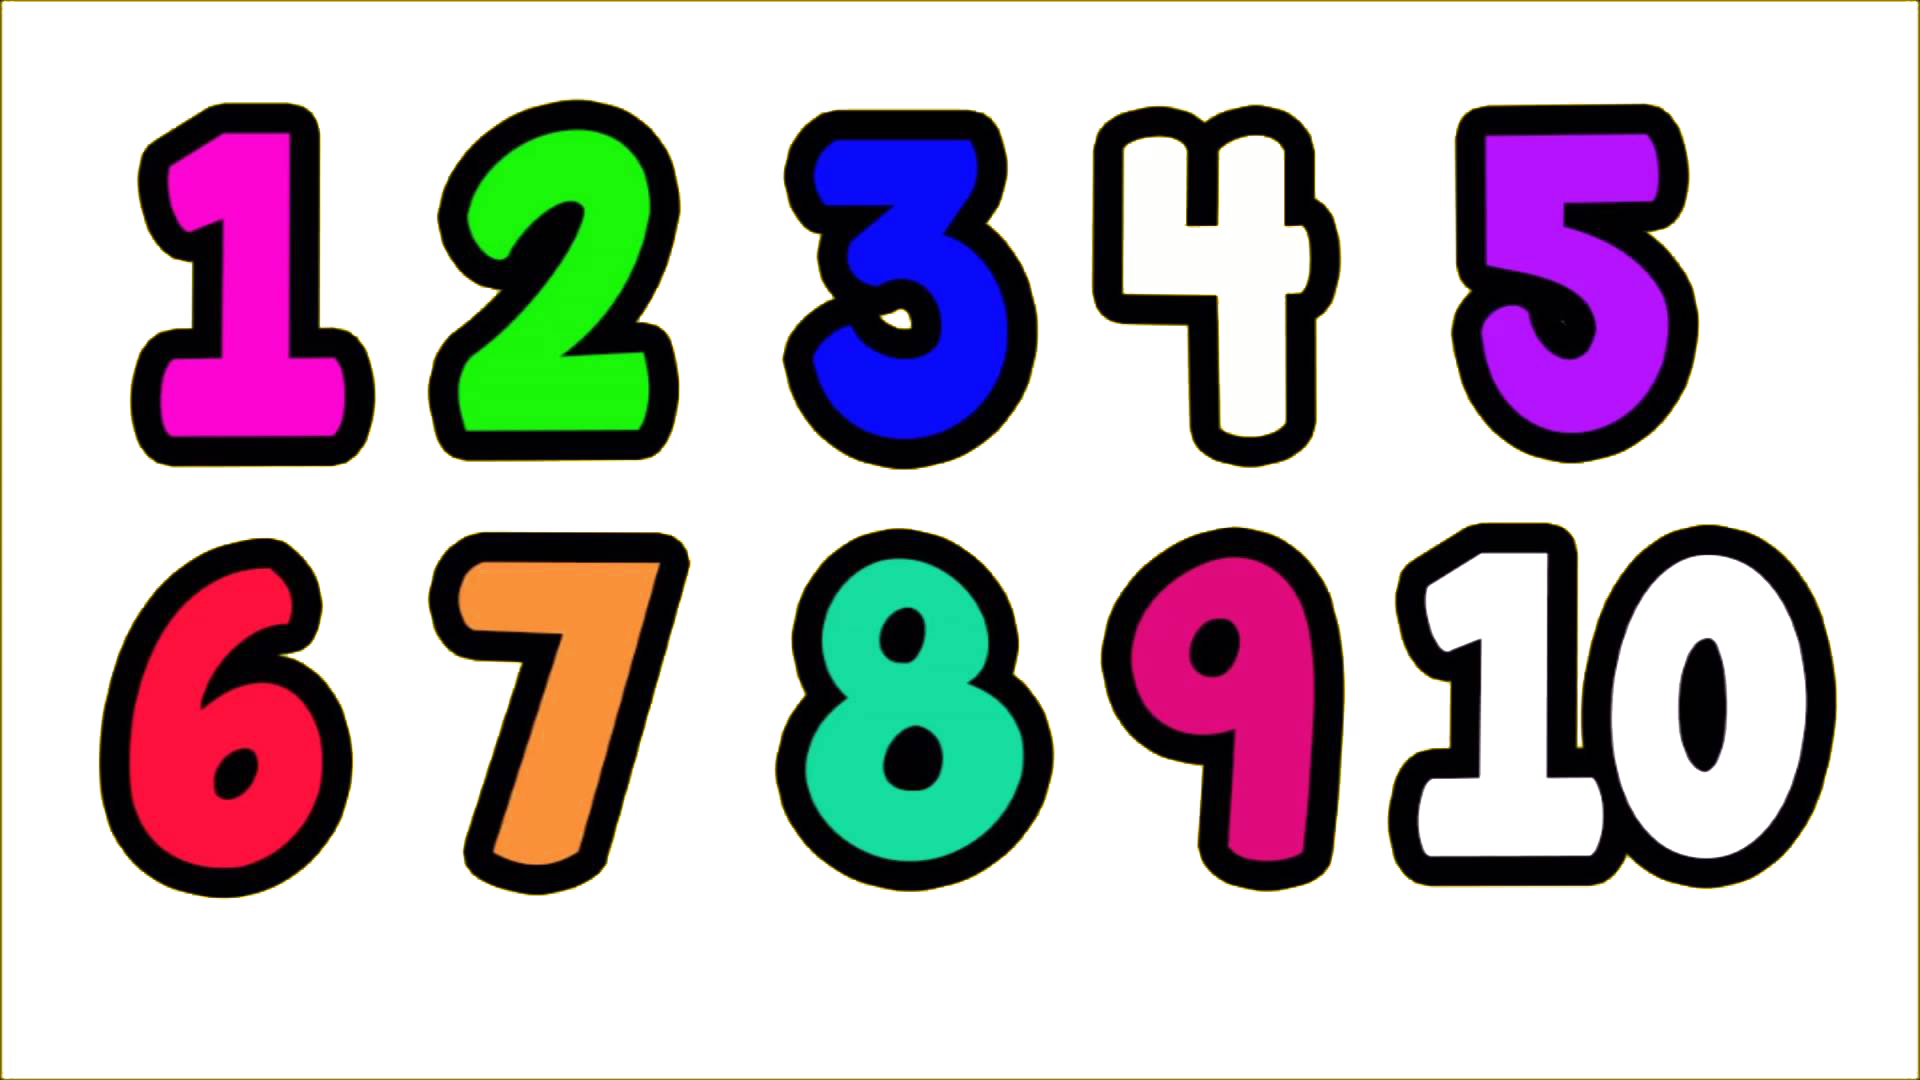 Transparent numbers clipart black and white library 1 to 10 Numbers PNG Transparent Images | PNG All black and white library